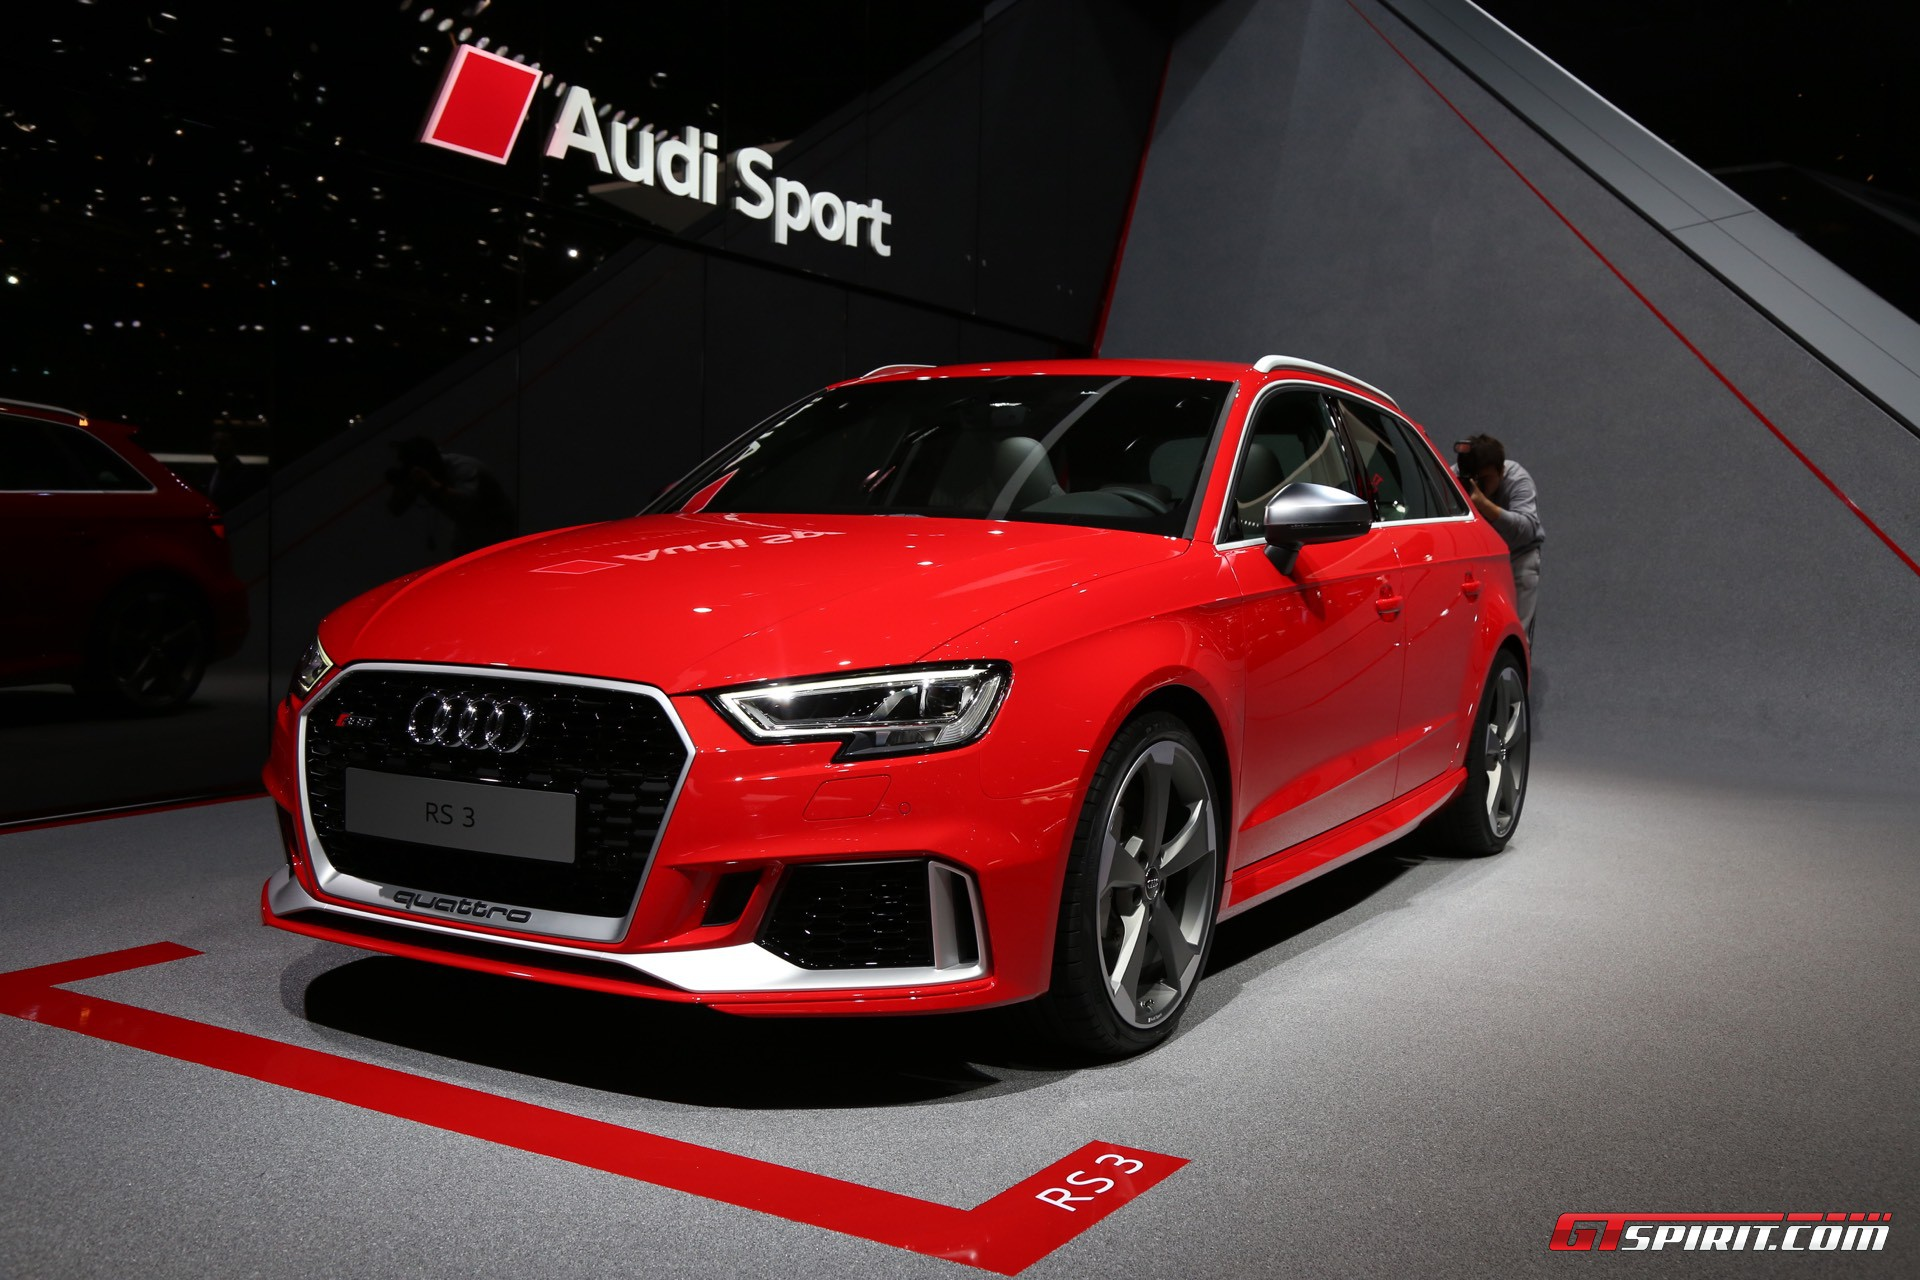 Audi RS3 Sportback at Geneva 2017